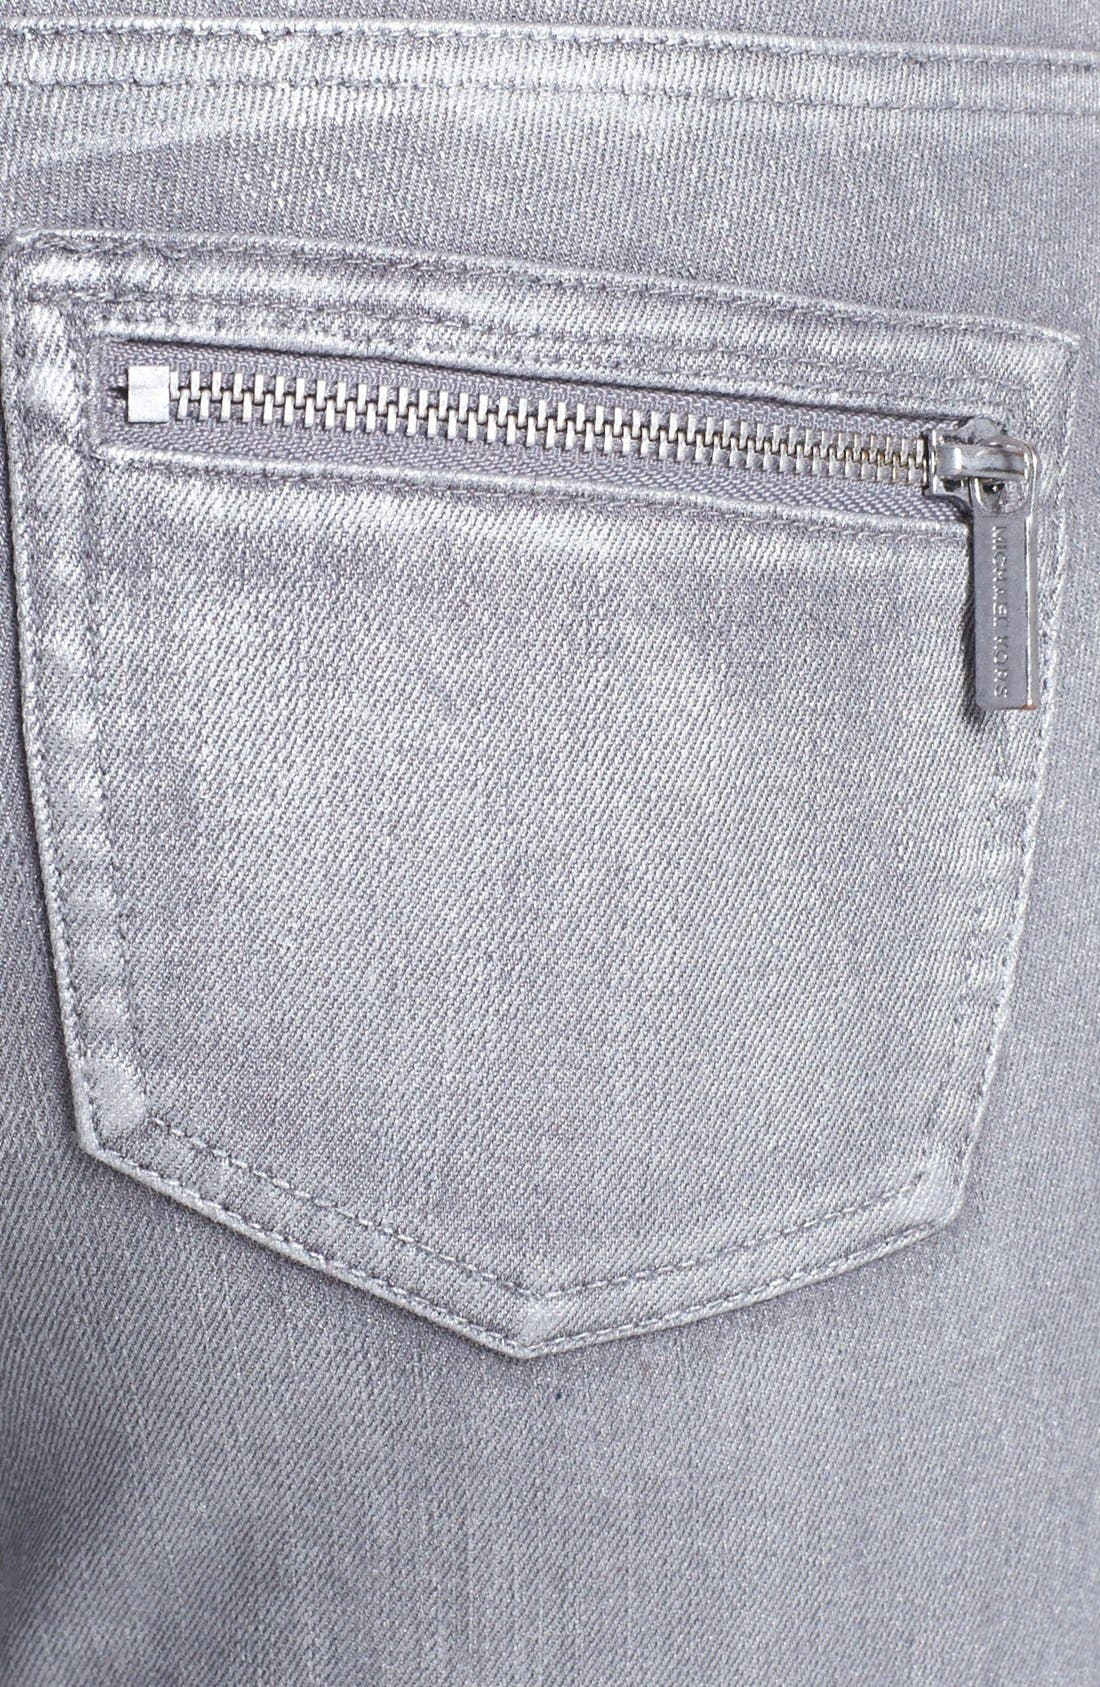 Alternate Image 2  - MICHAEL Michael Jeans Moto Skinny Jeans (Silver)